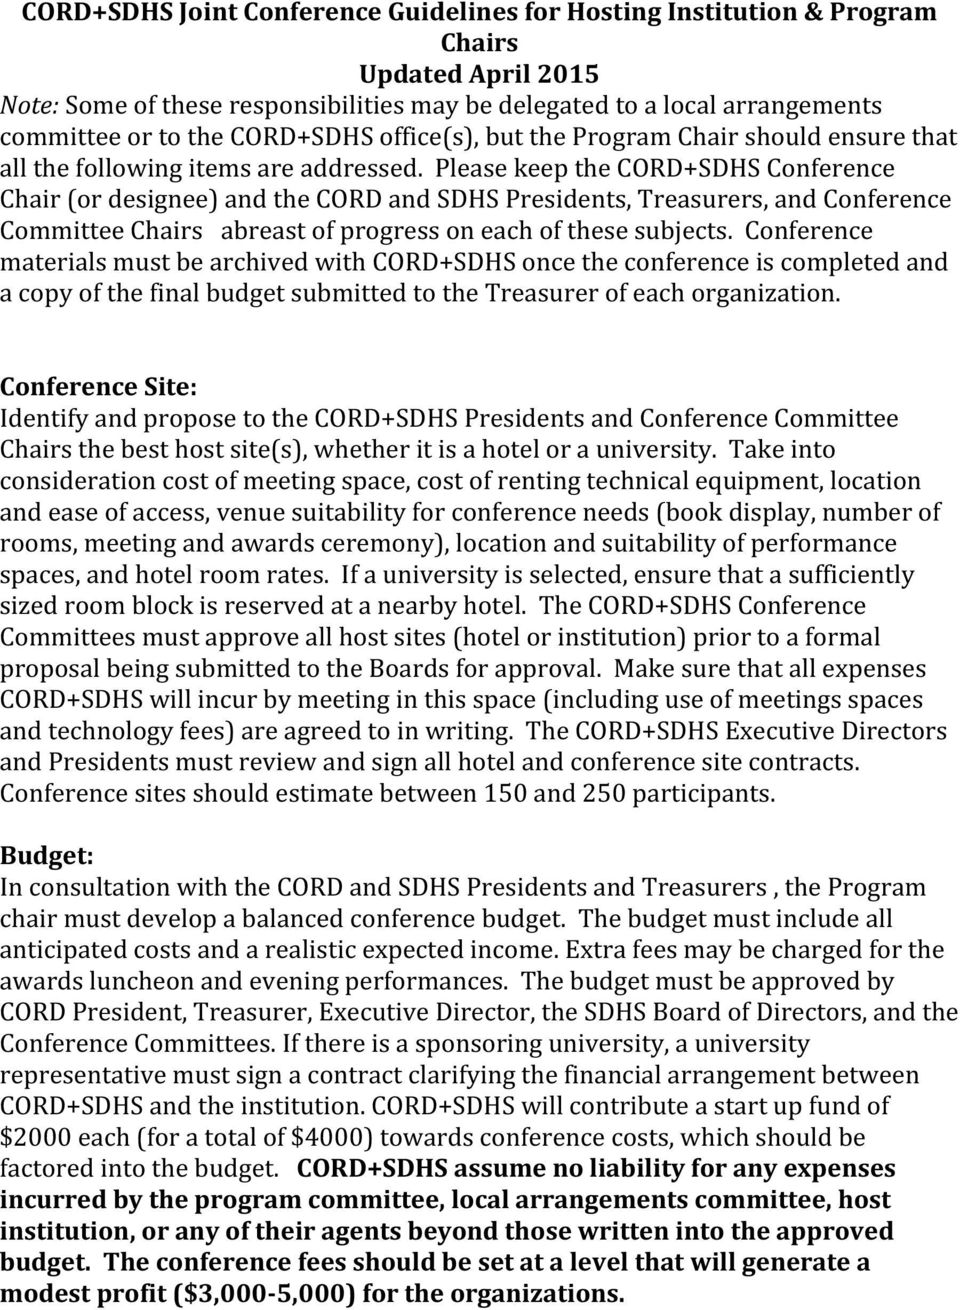 Please keep the CORD+SDHS Conference Chair (or designee) and the CORD and SDHS Presidents, Treasurers, and Conference Committee Chairs abreast of progress on each of these subjects.